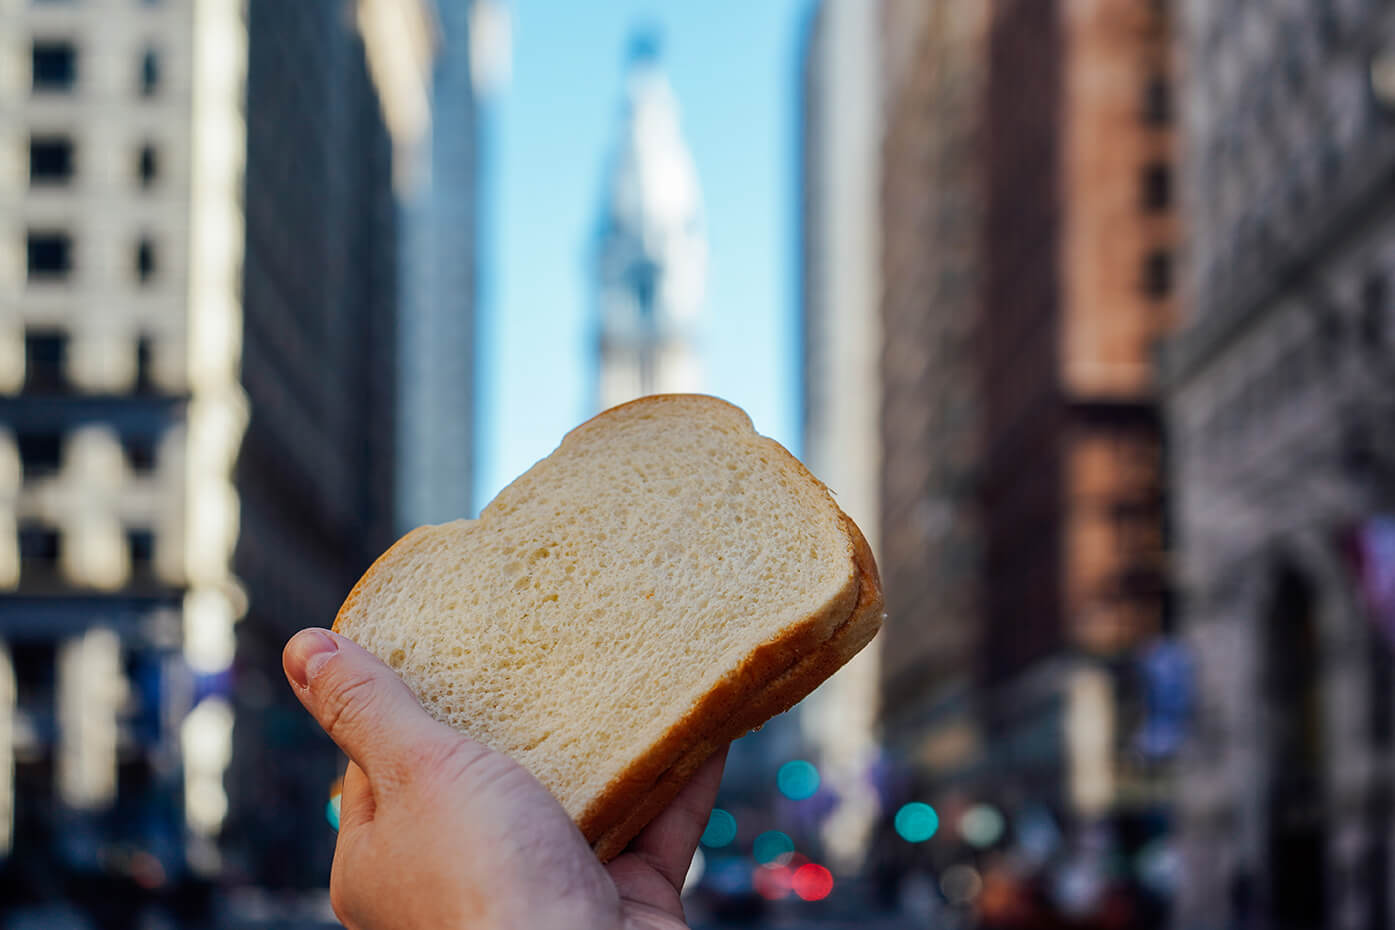 Philadelphia to Host First-Ever International Peanut Butter & Jelly Sandwich Conference